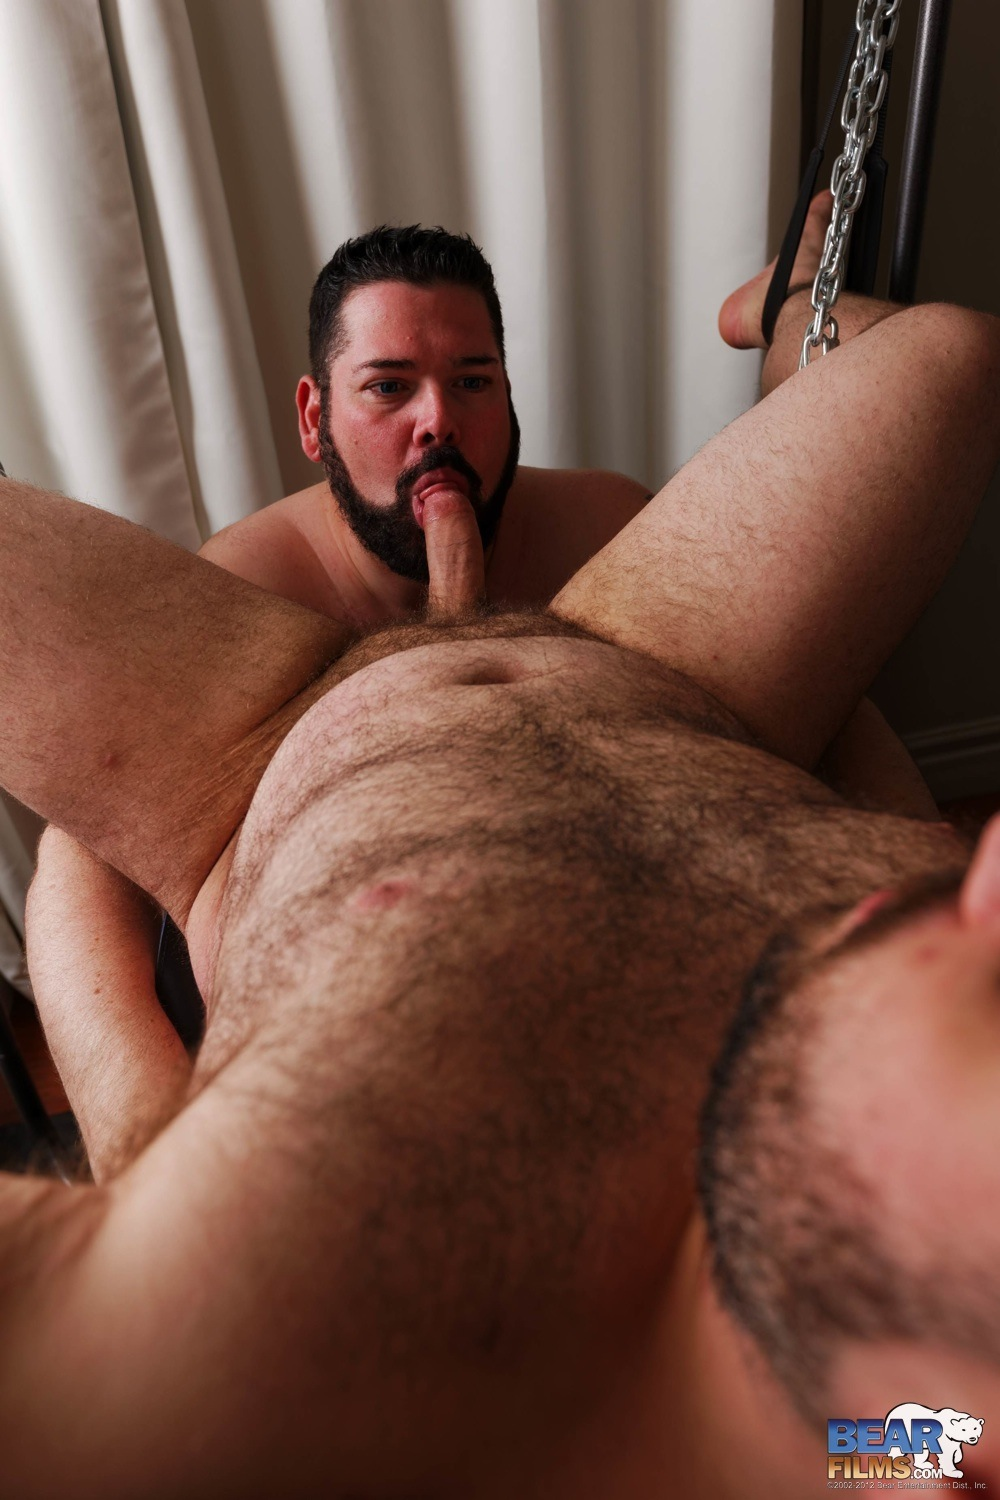 Hot muscle bear getting bj from hunk 3